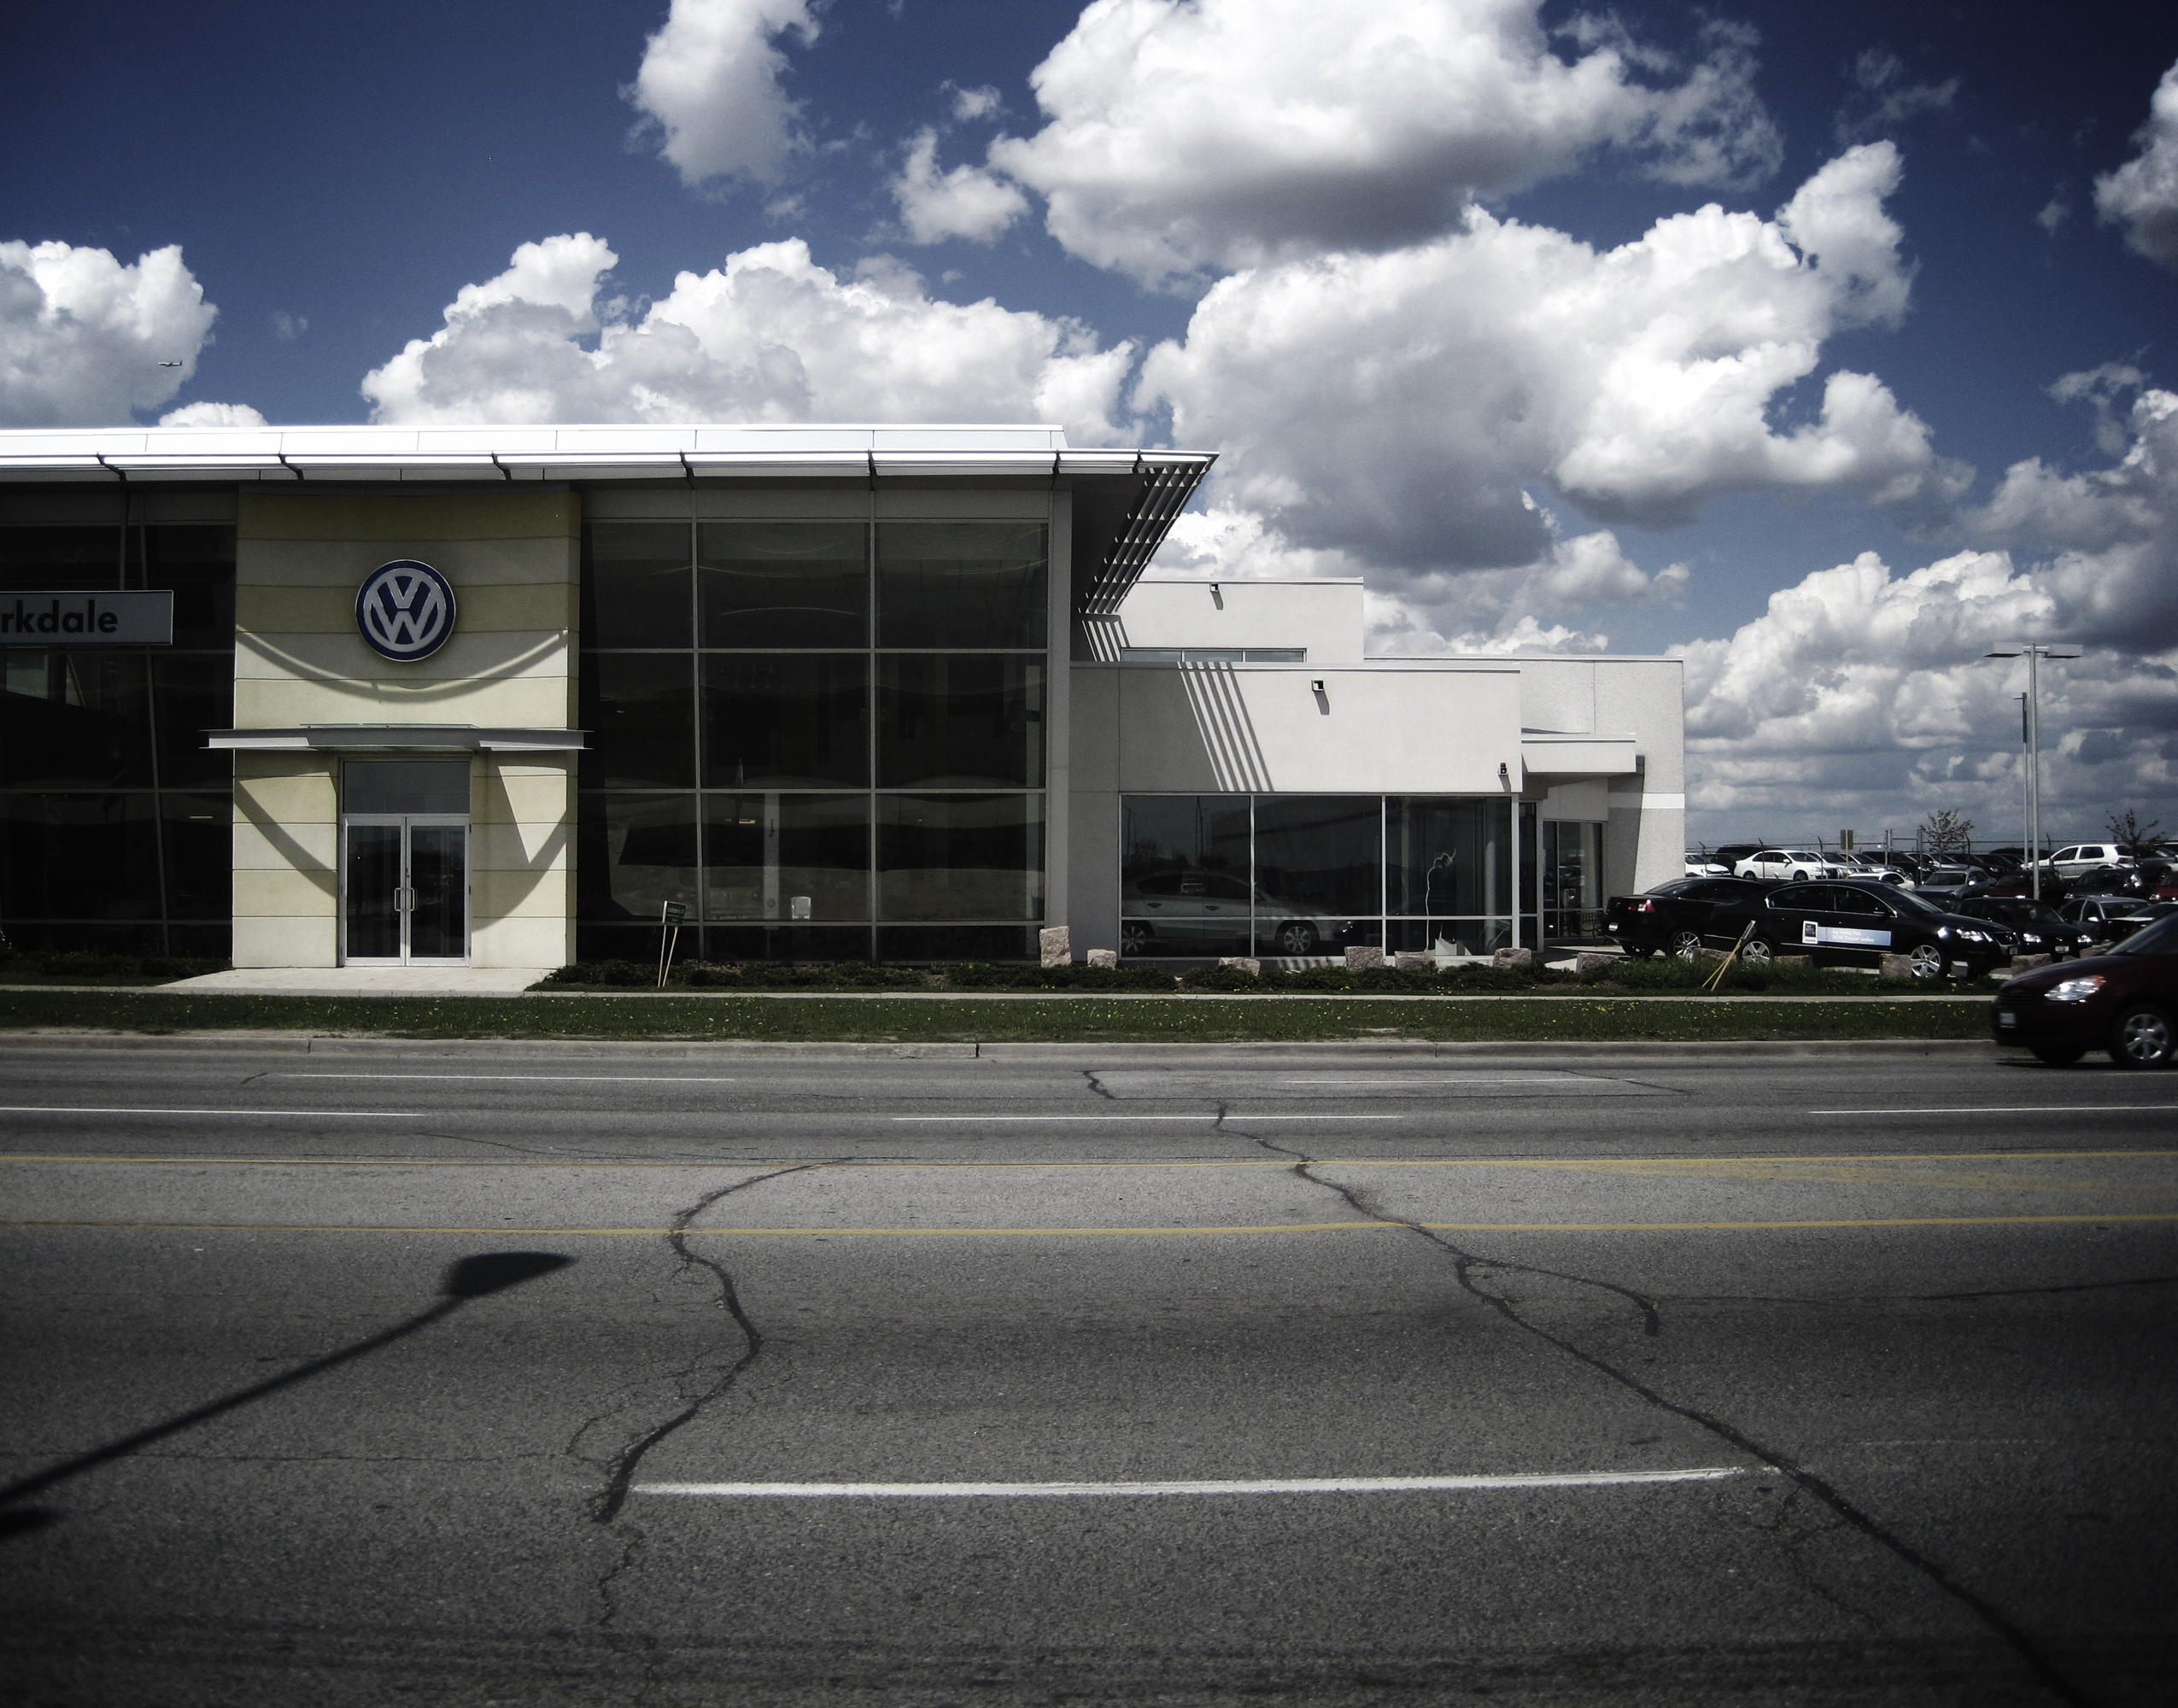 New Vw Used Car Dealer Columbus Hatfield Volkswagen